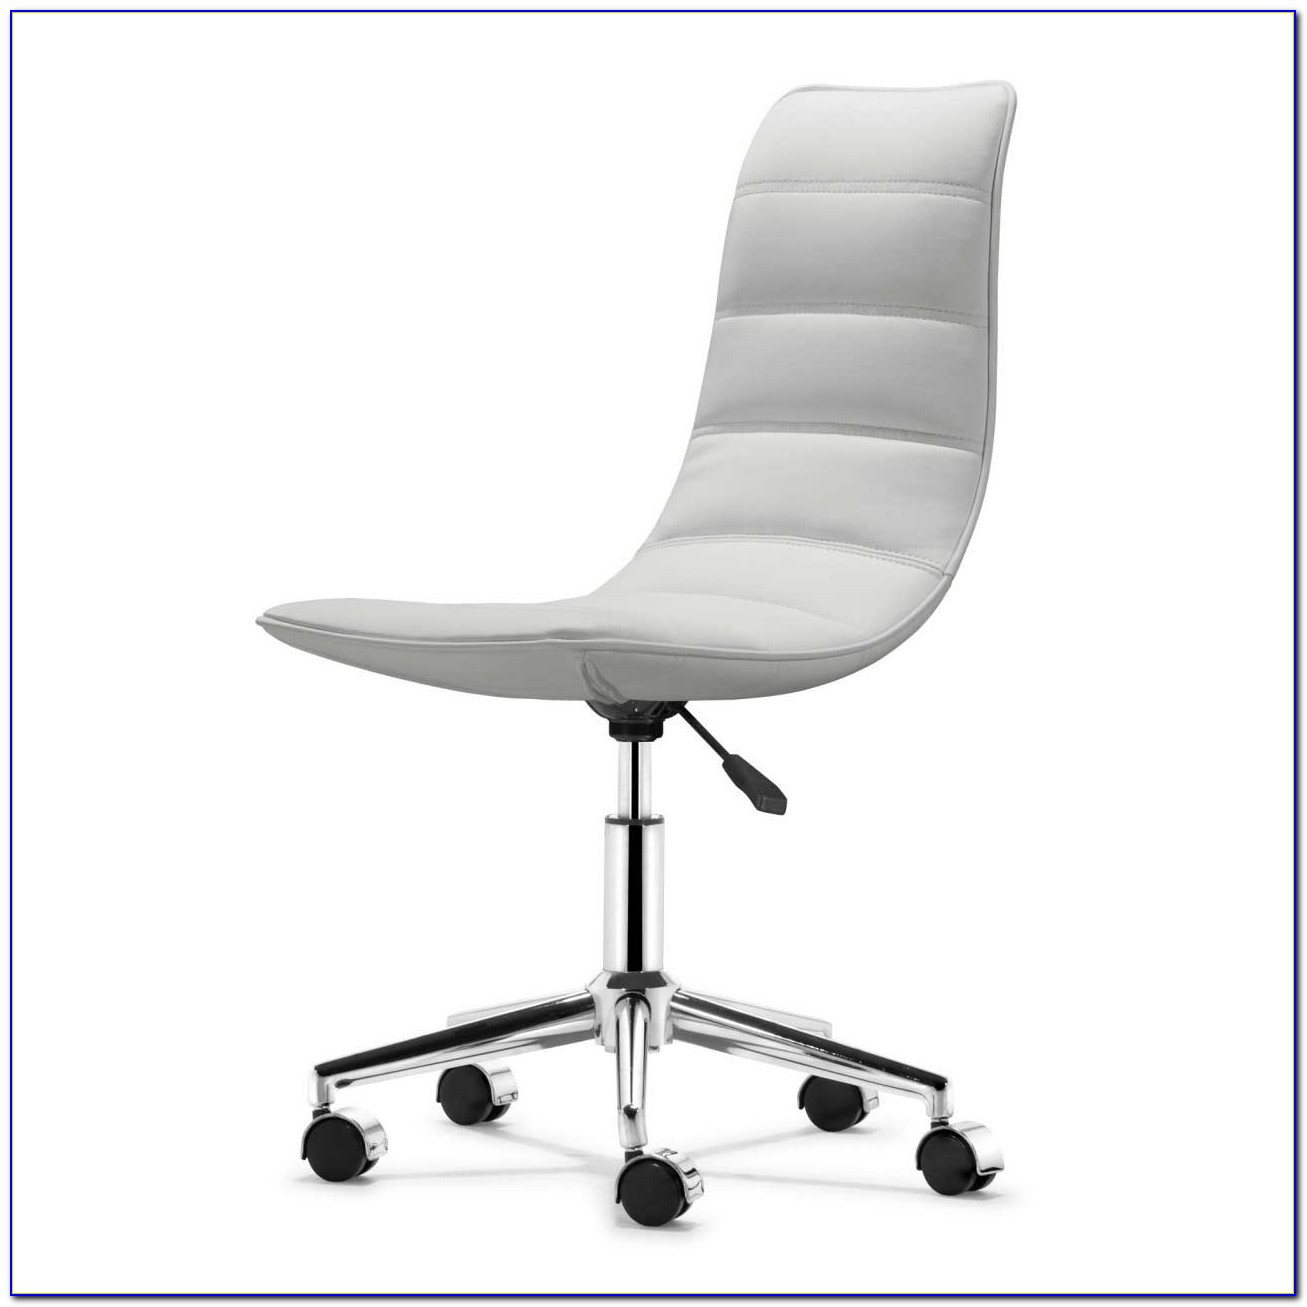 White Armless Desk Chair